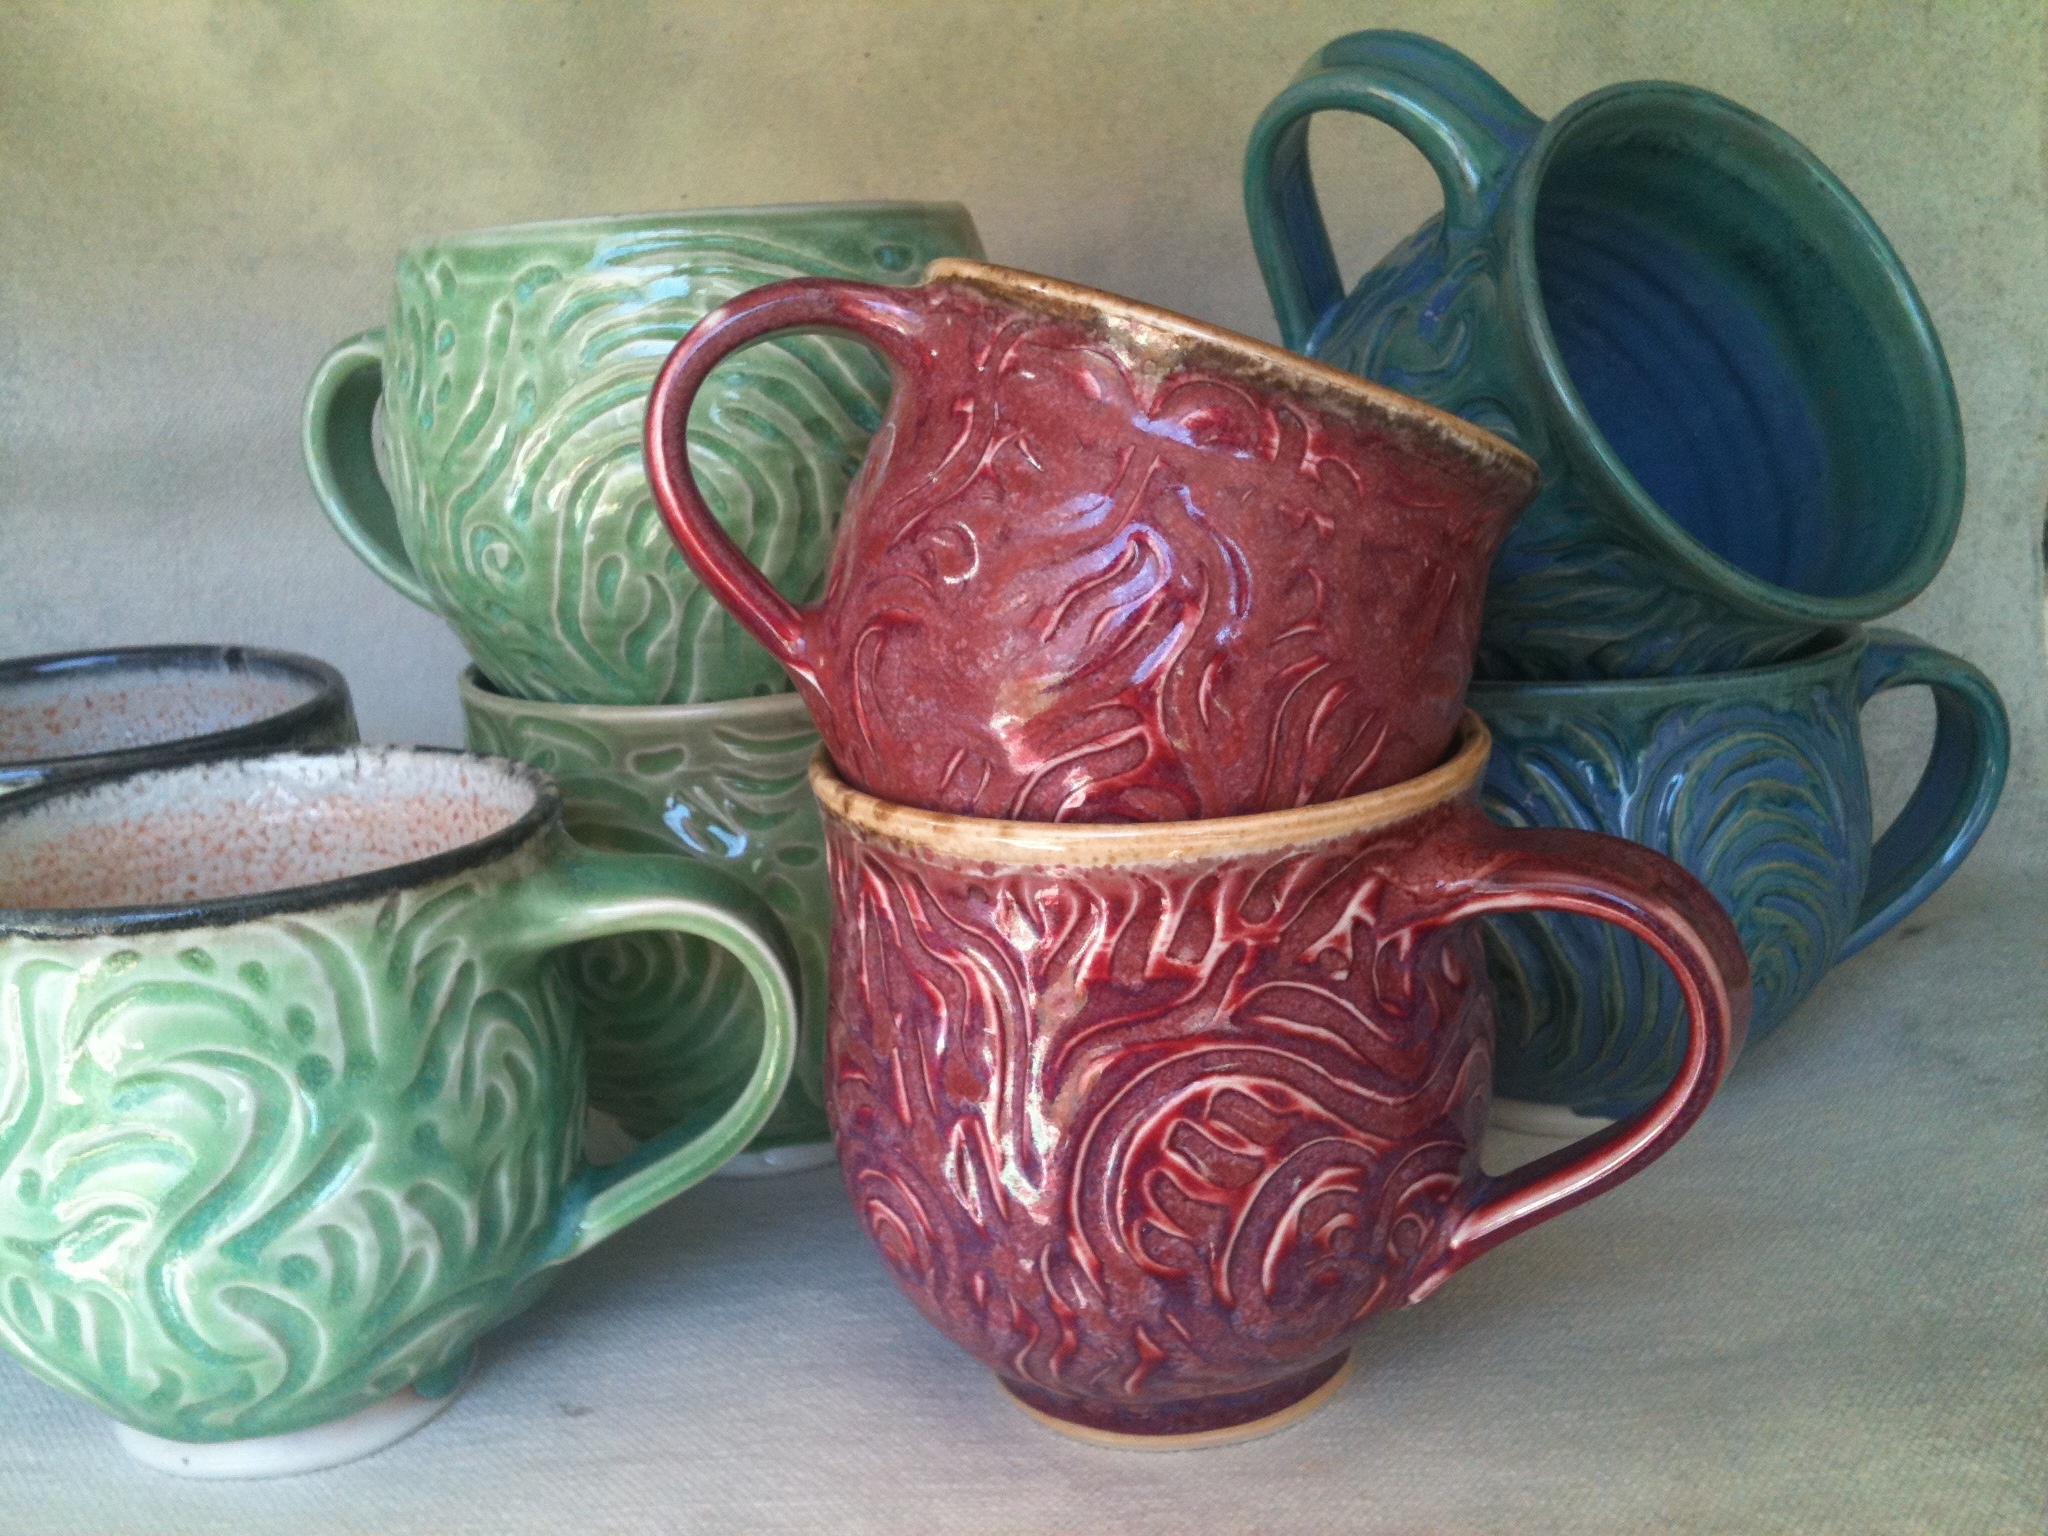 Carved porcelain mugs